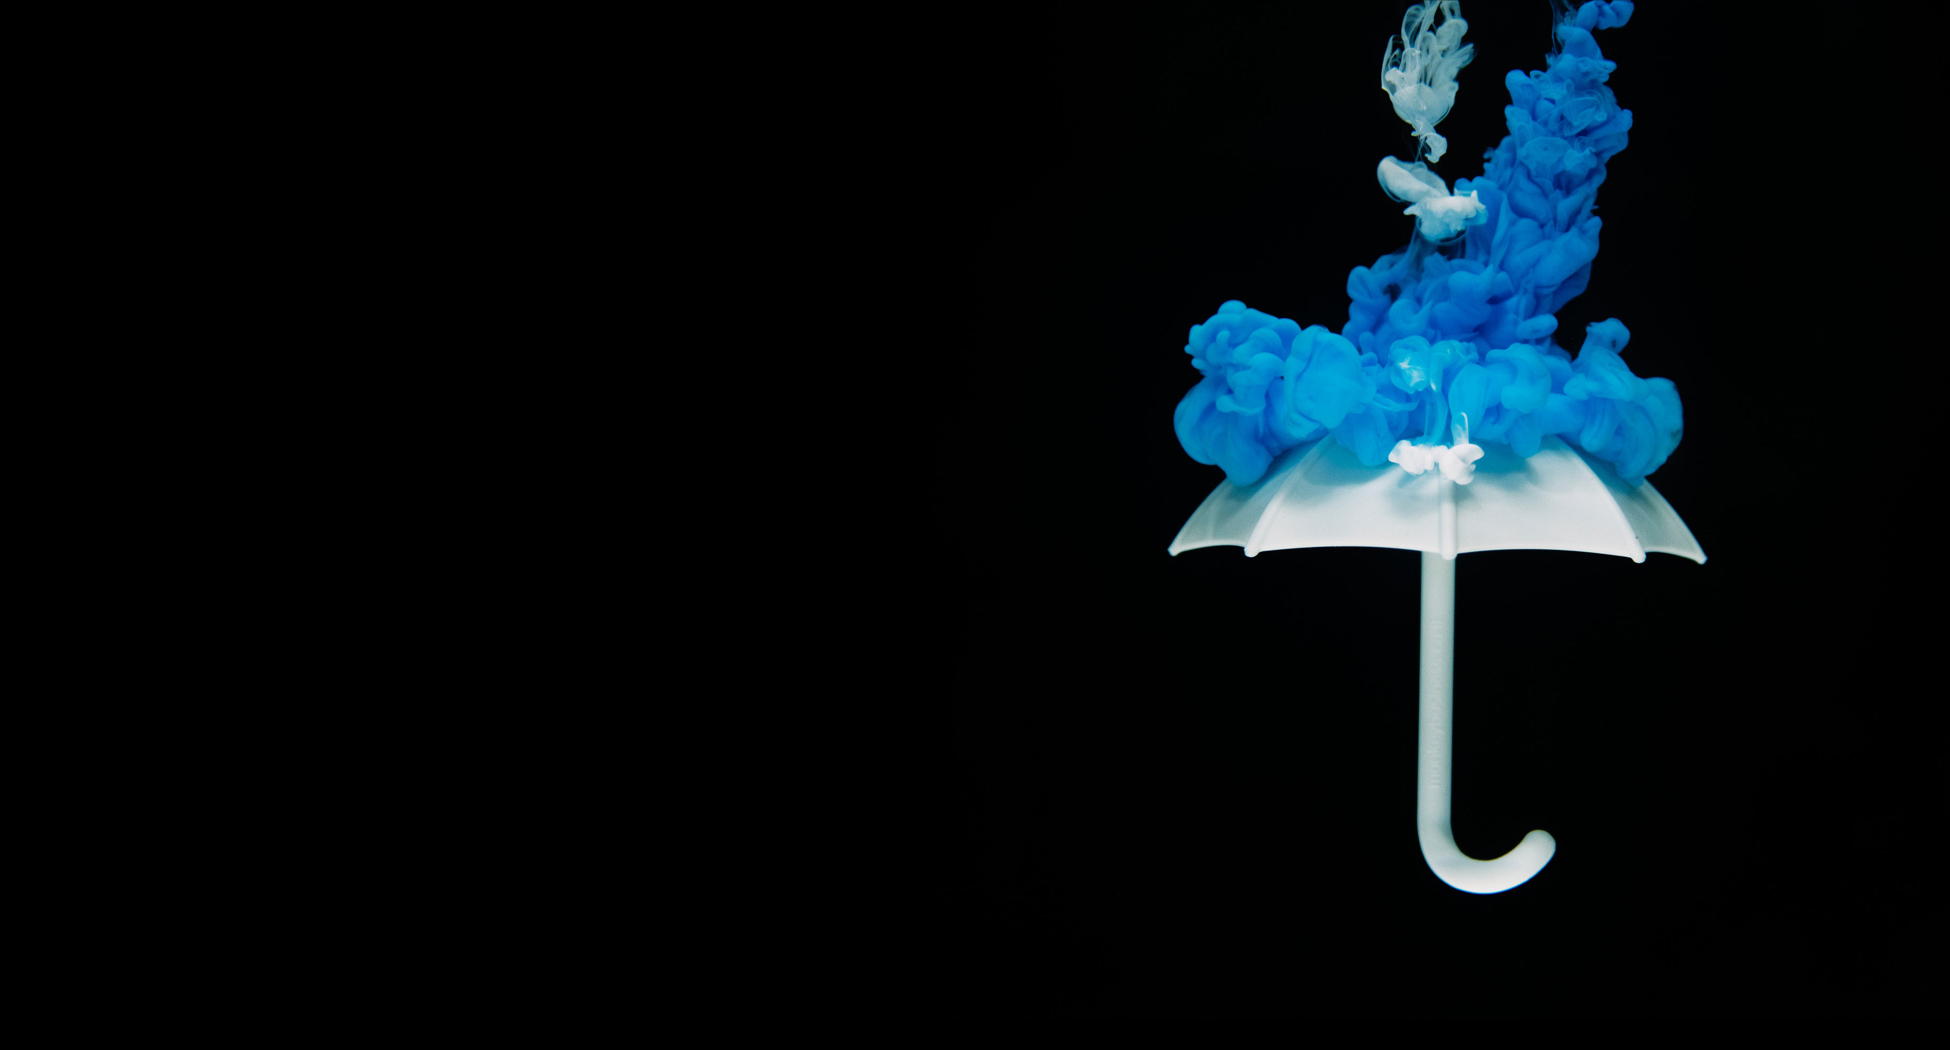 photo of umbrella with blue ink puffs on it on black background